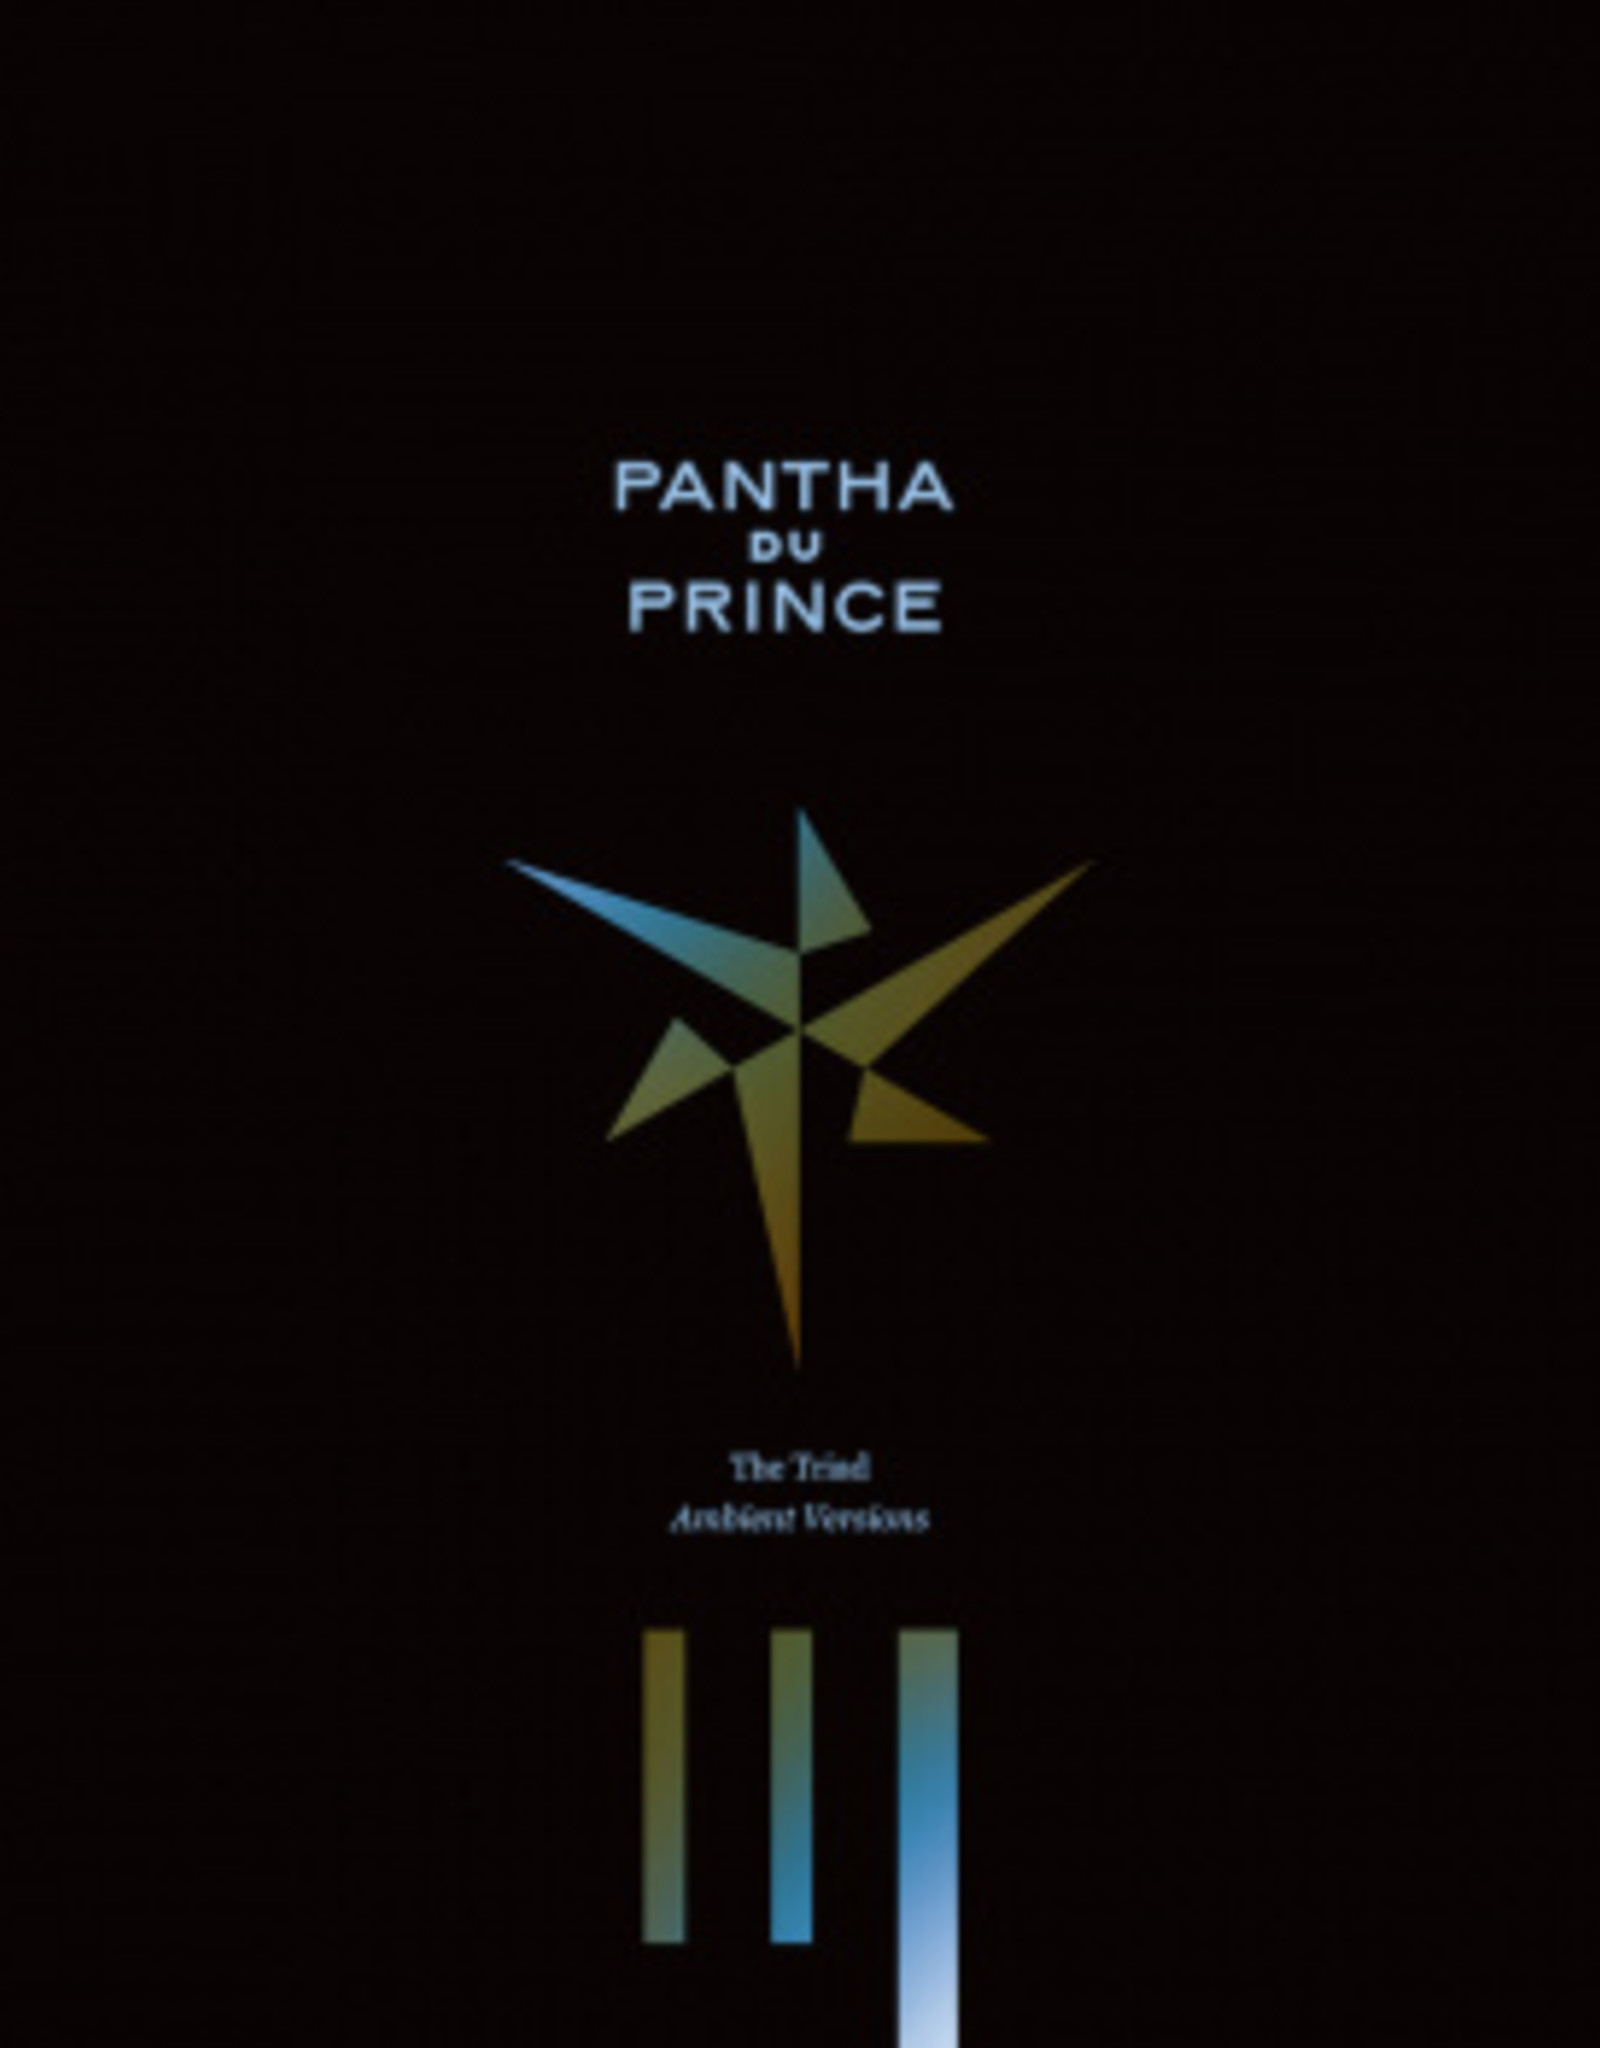 Pantha Du Prince - The Triad - Ambient Versions